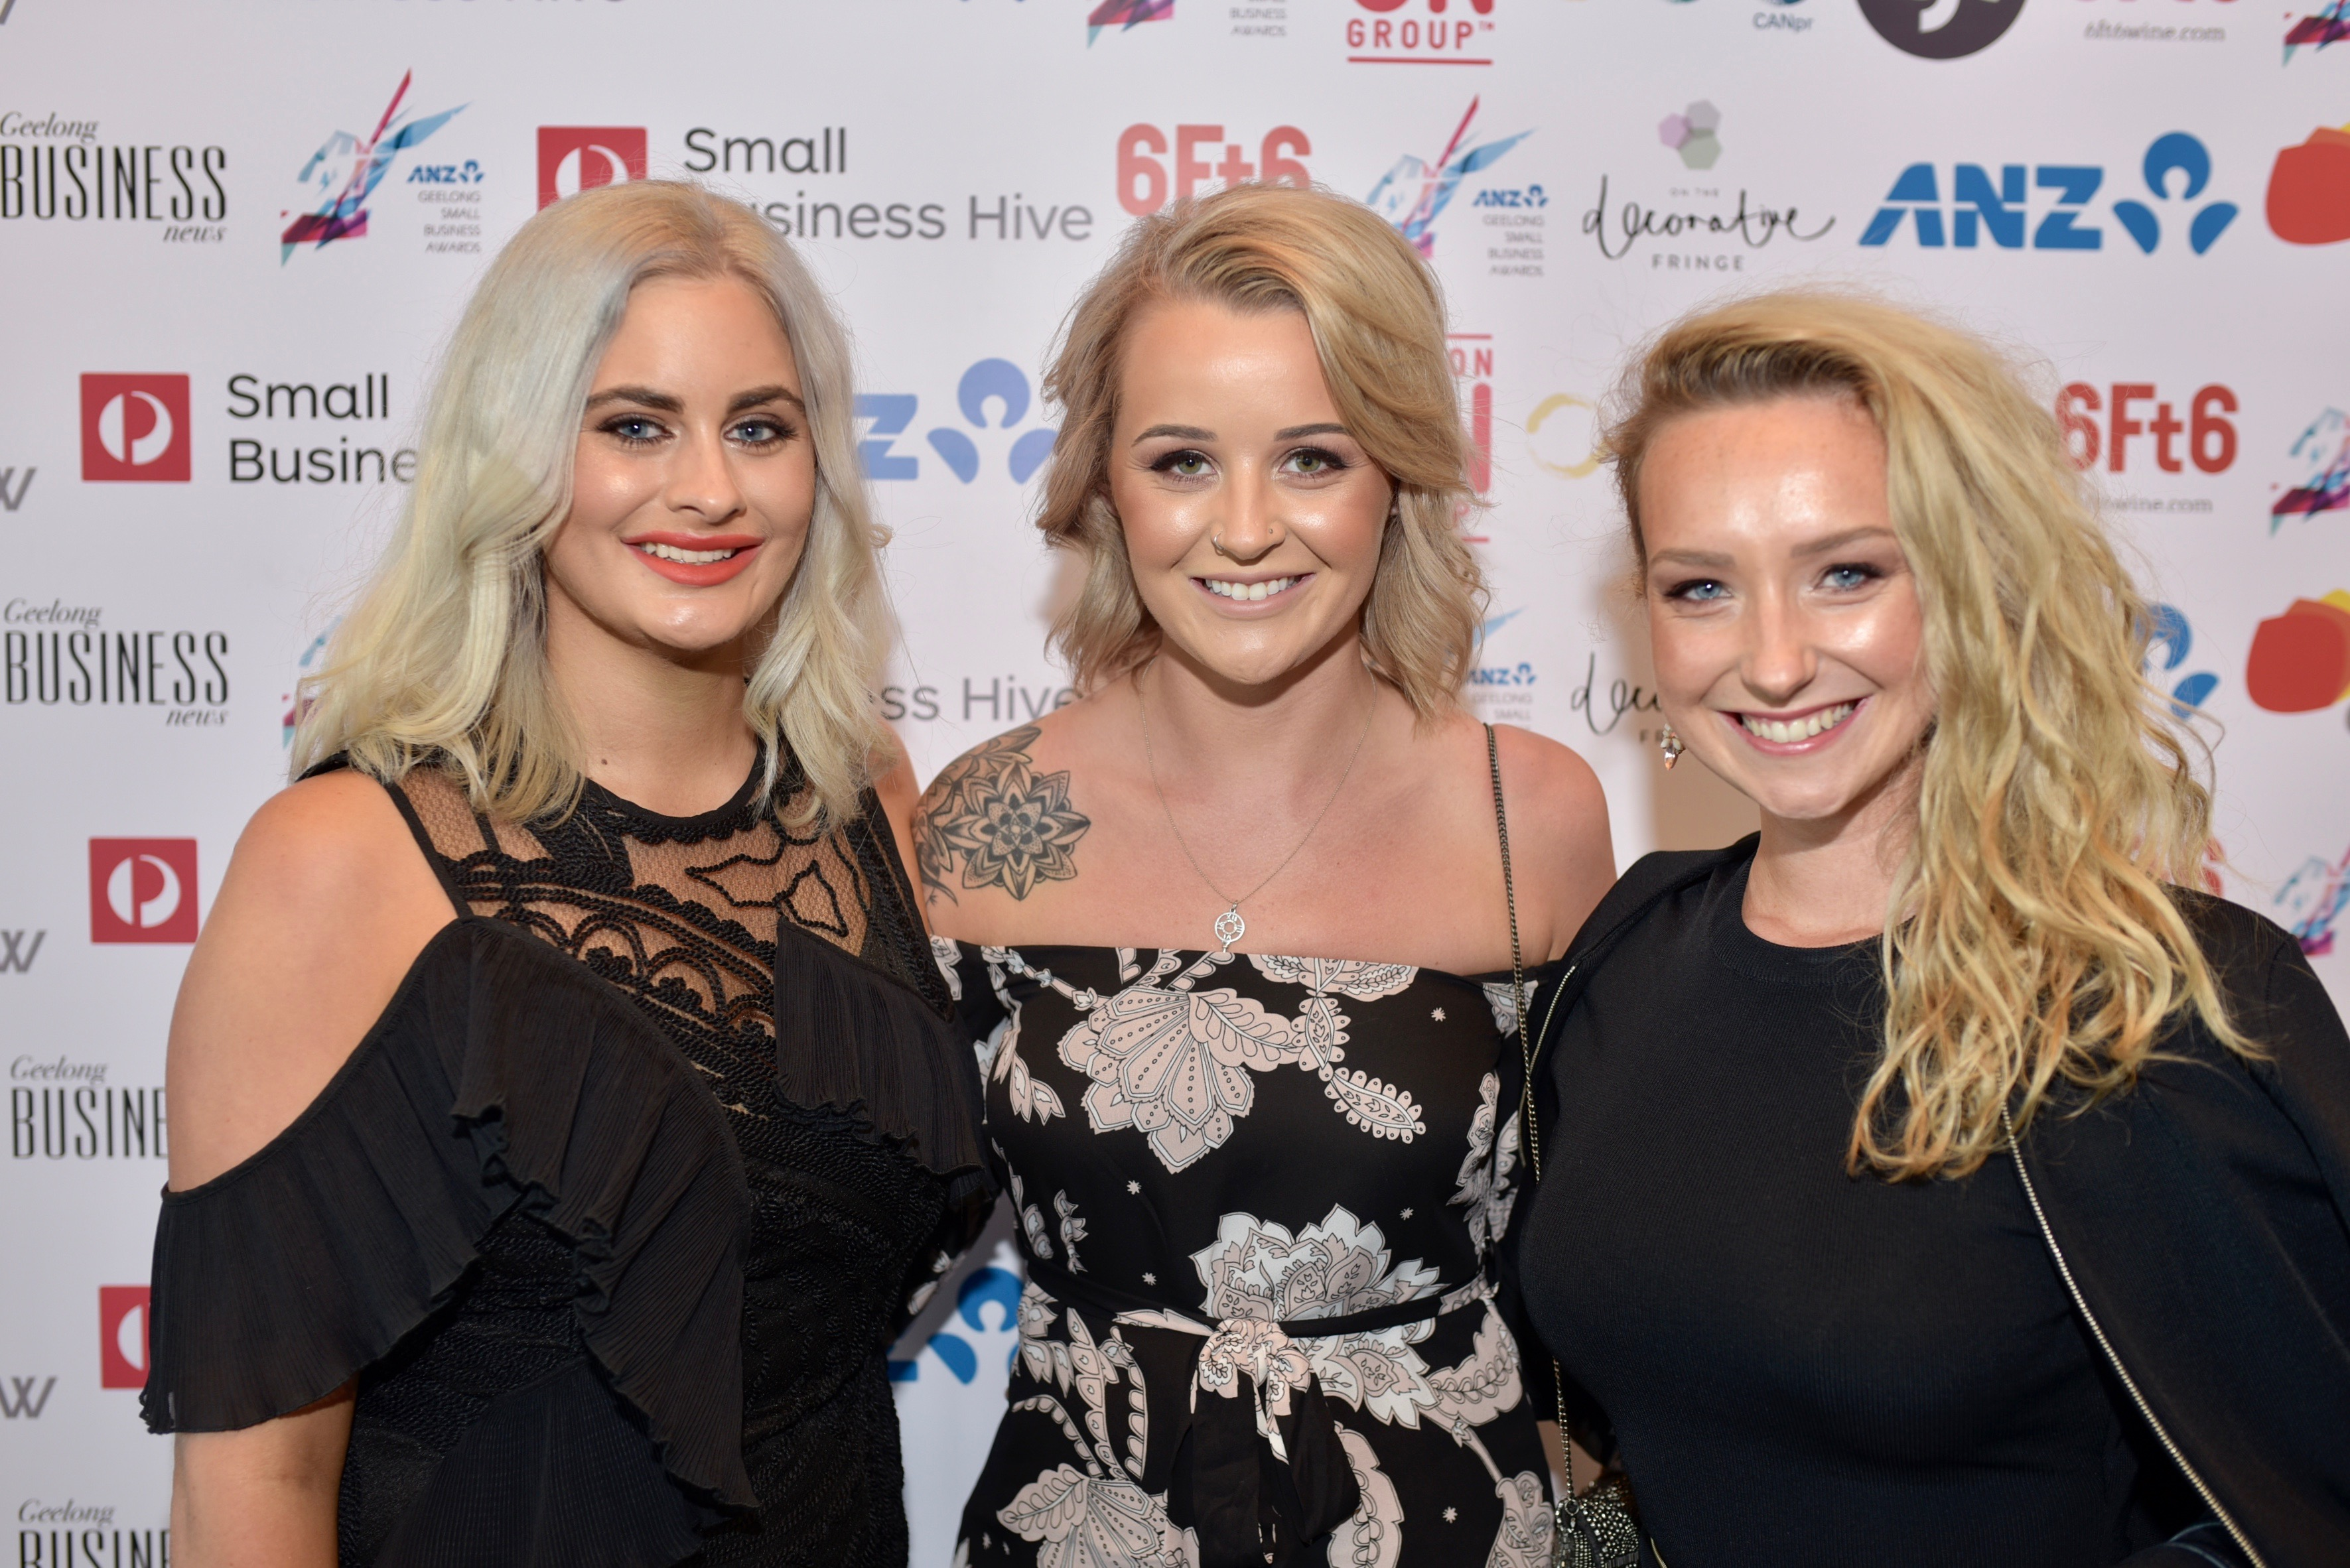 Geelong Small Business Awards890